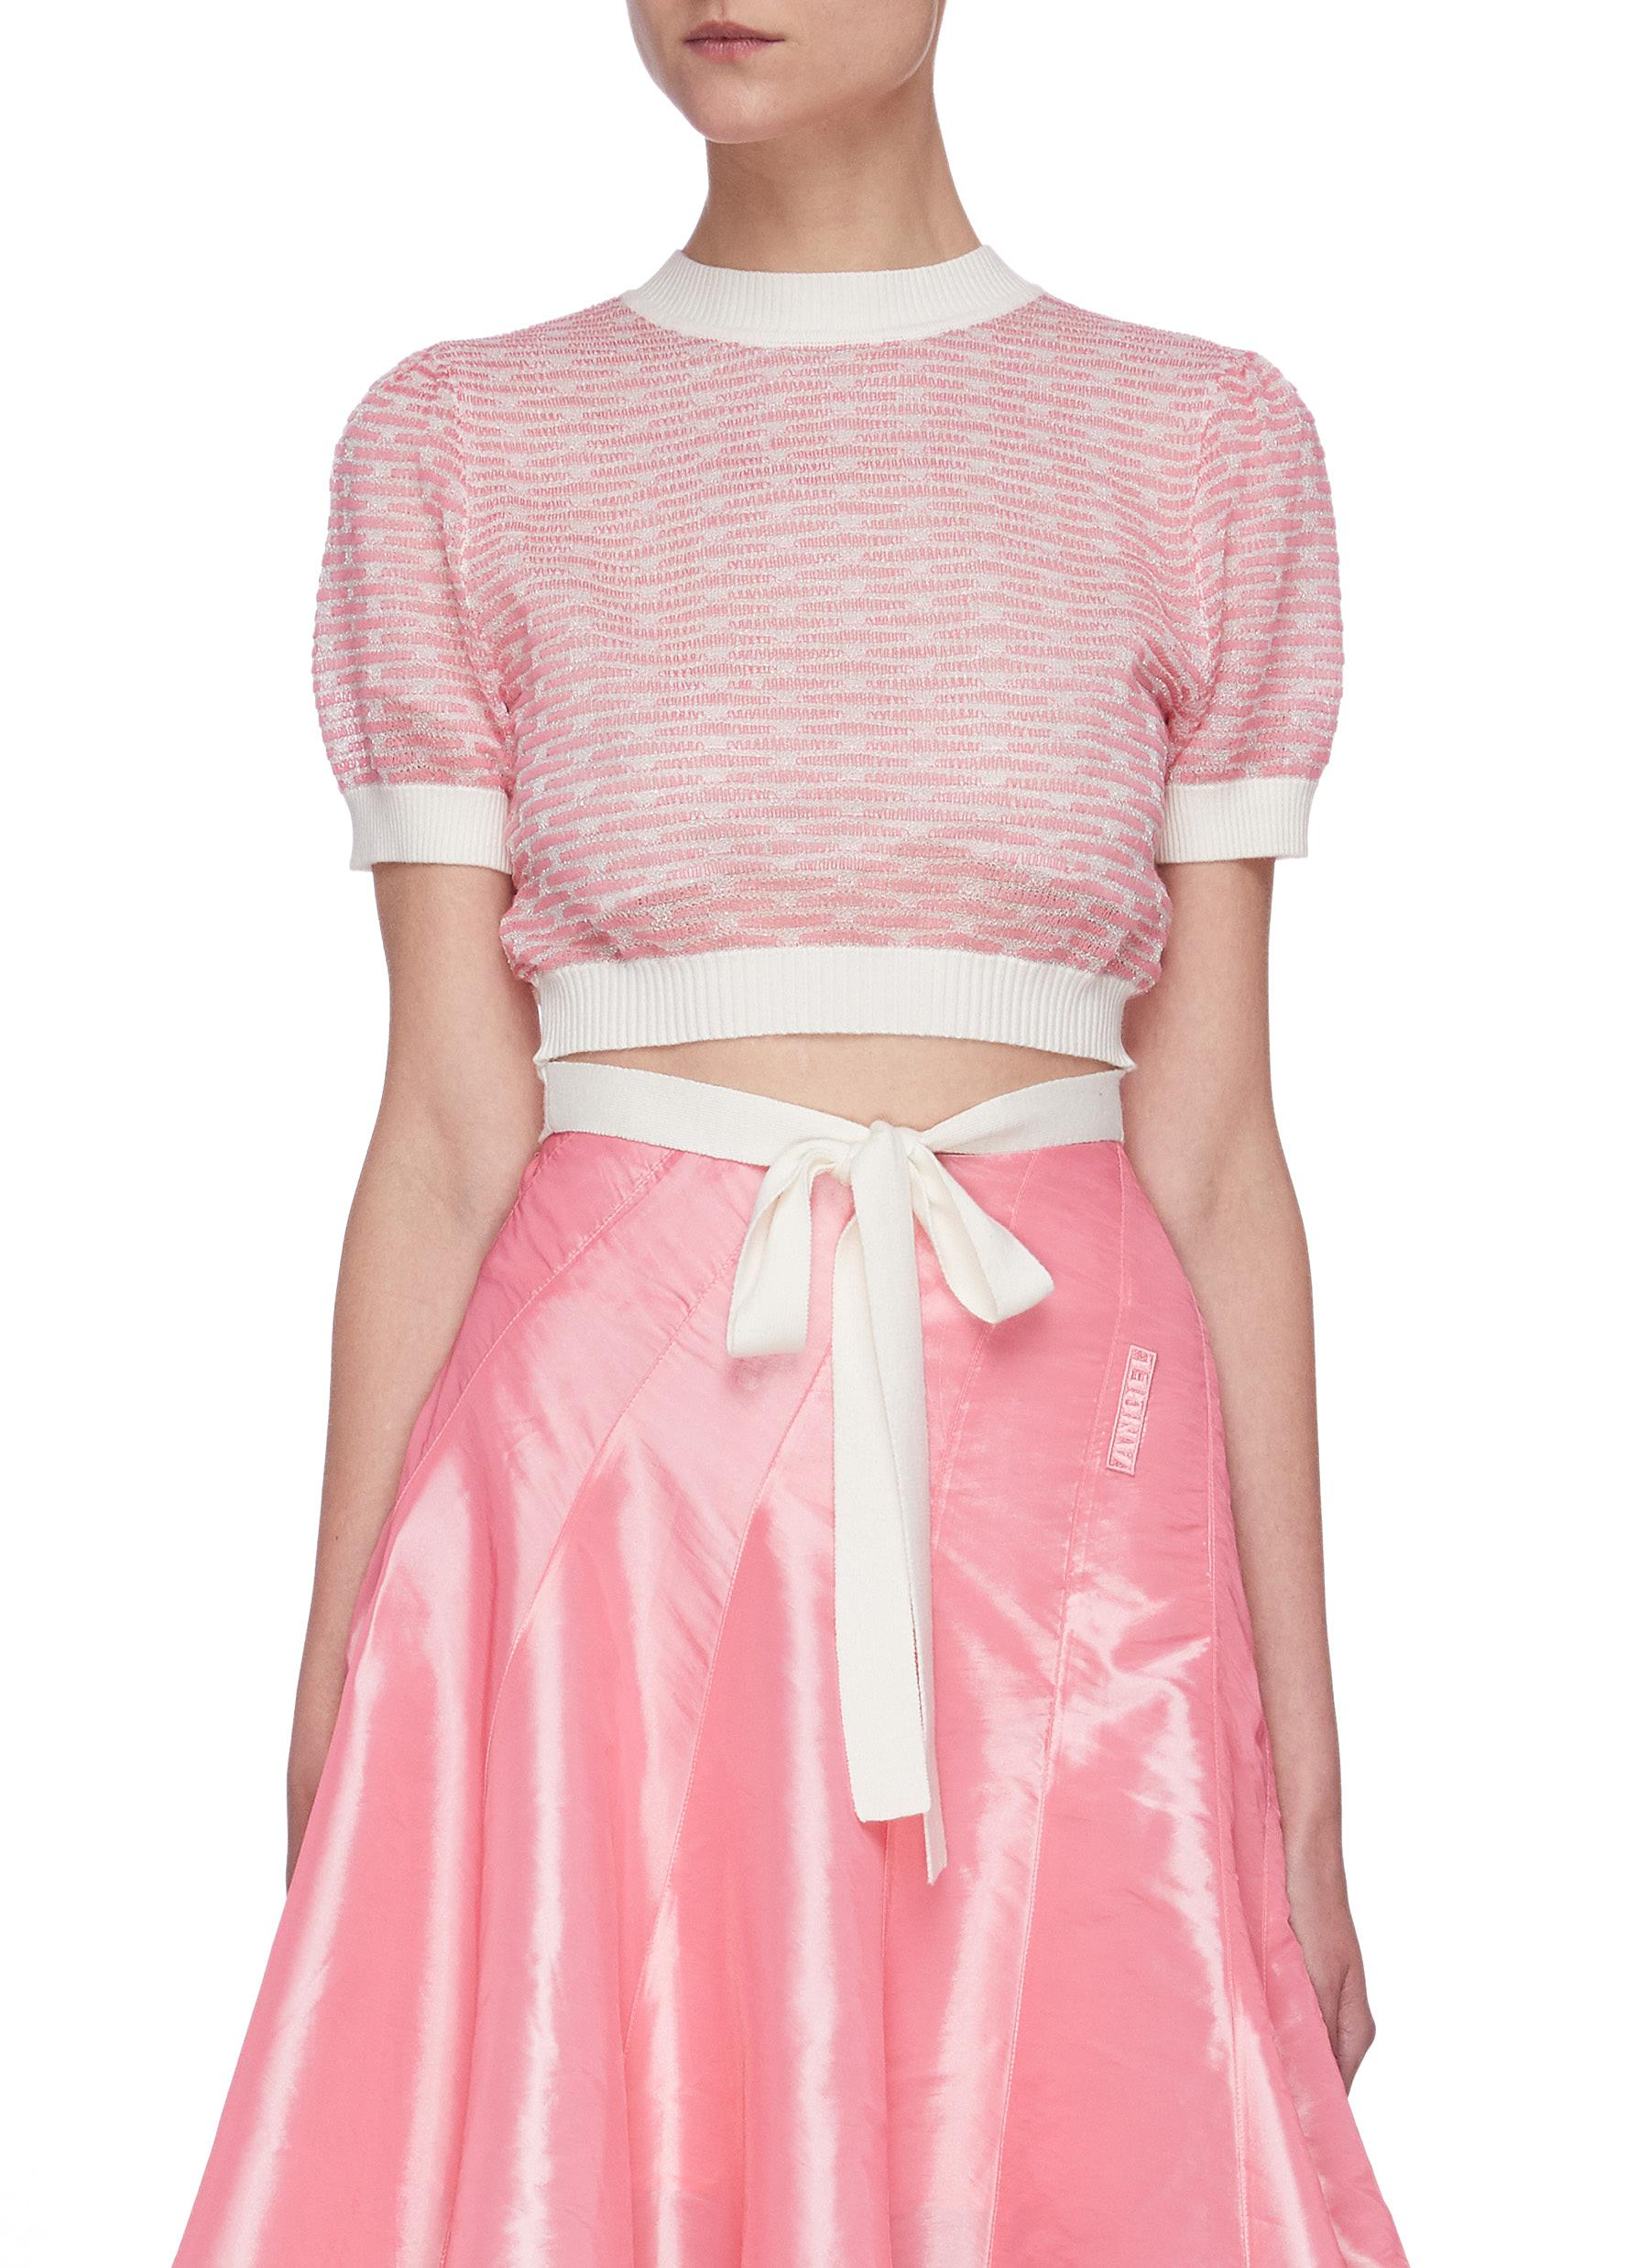 Buy Angel Chen Tops Cut-out Bow Knot Hem Crop Top